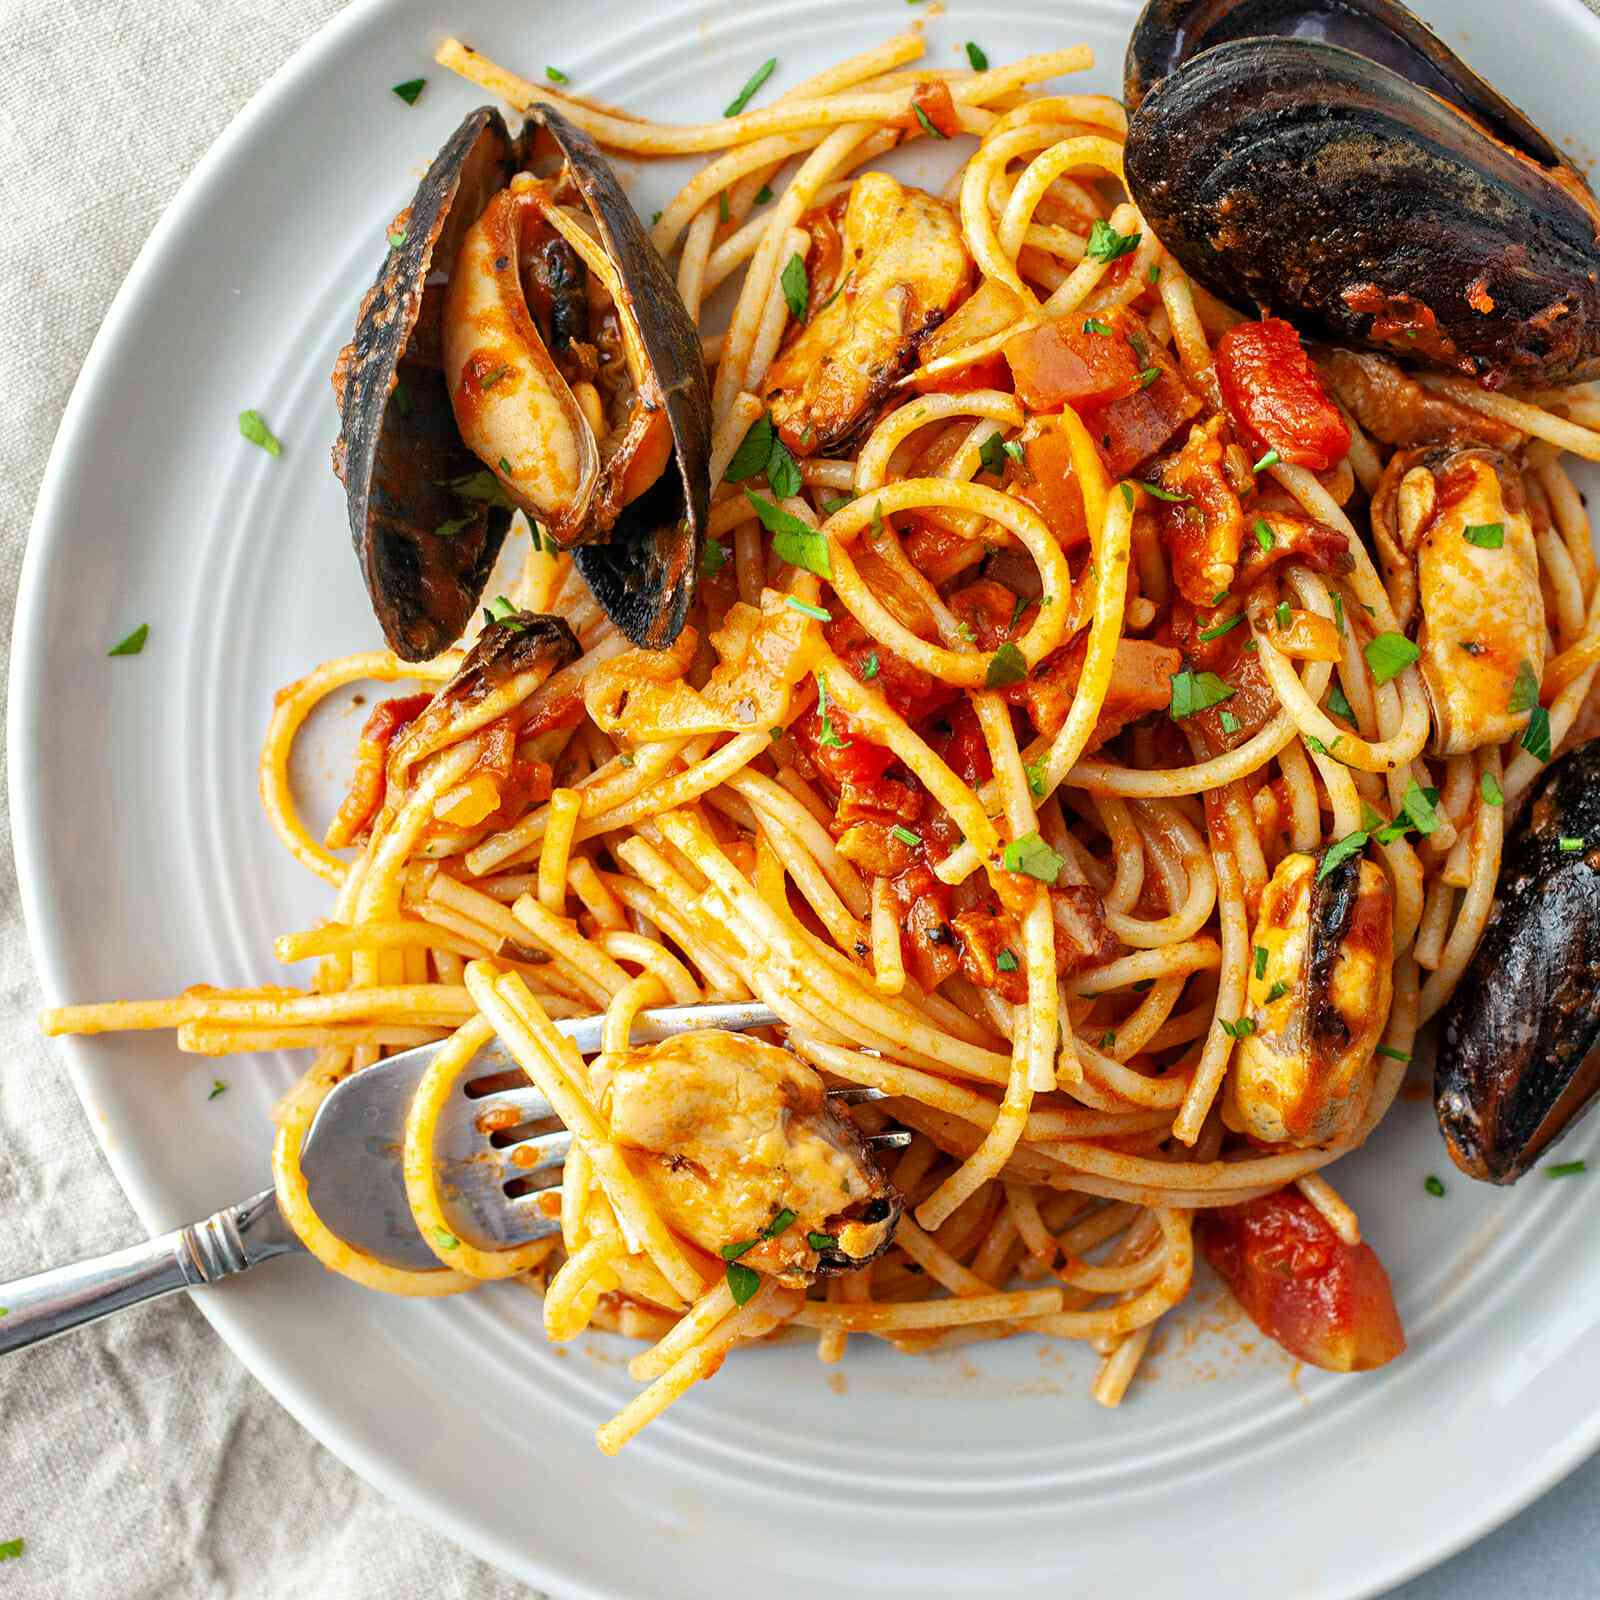 Mussels in Spicy tomato sauce recipe - overhead shot of spaghetti on plate with mussels on side